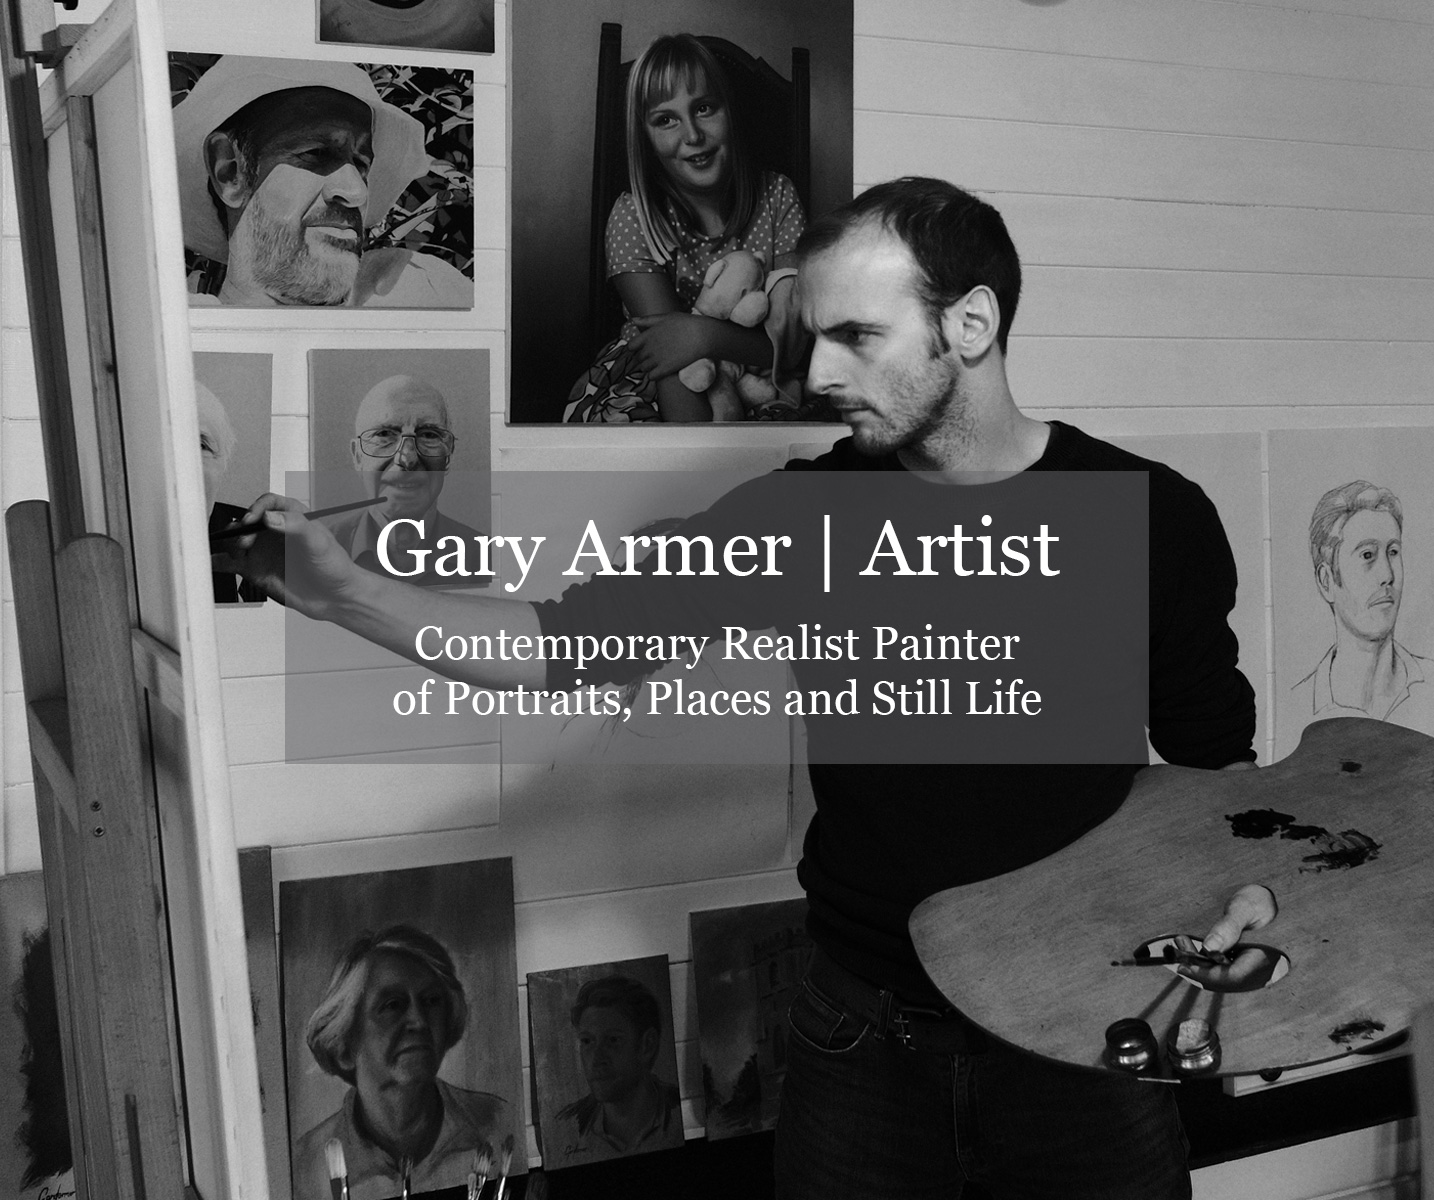 Gary Armer Artist - Painter of Portraits, Landscapes and Still Life